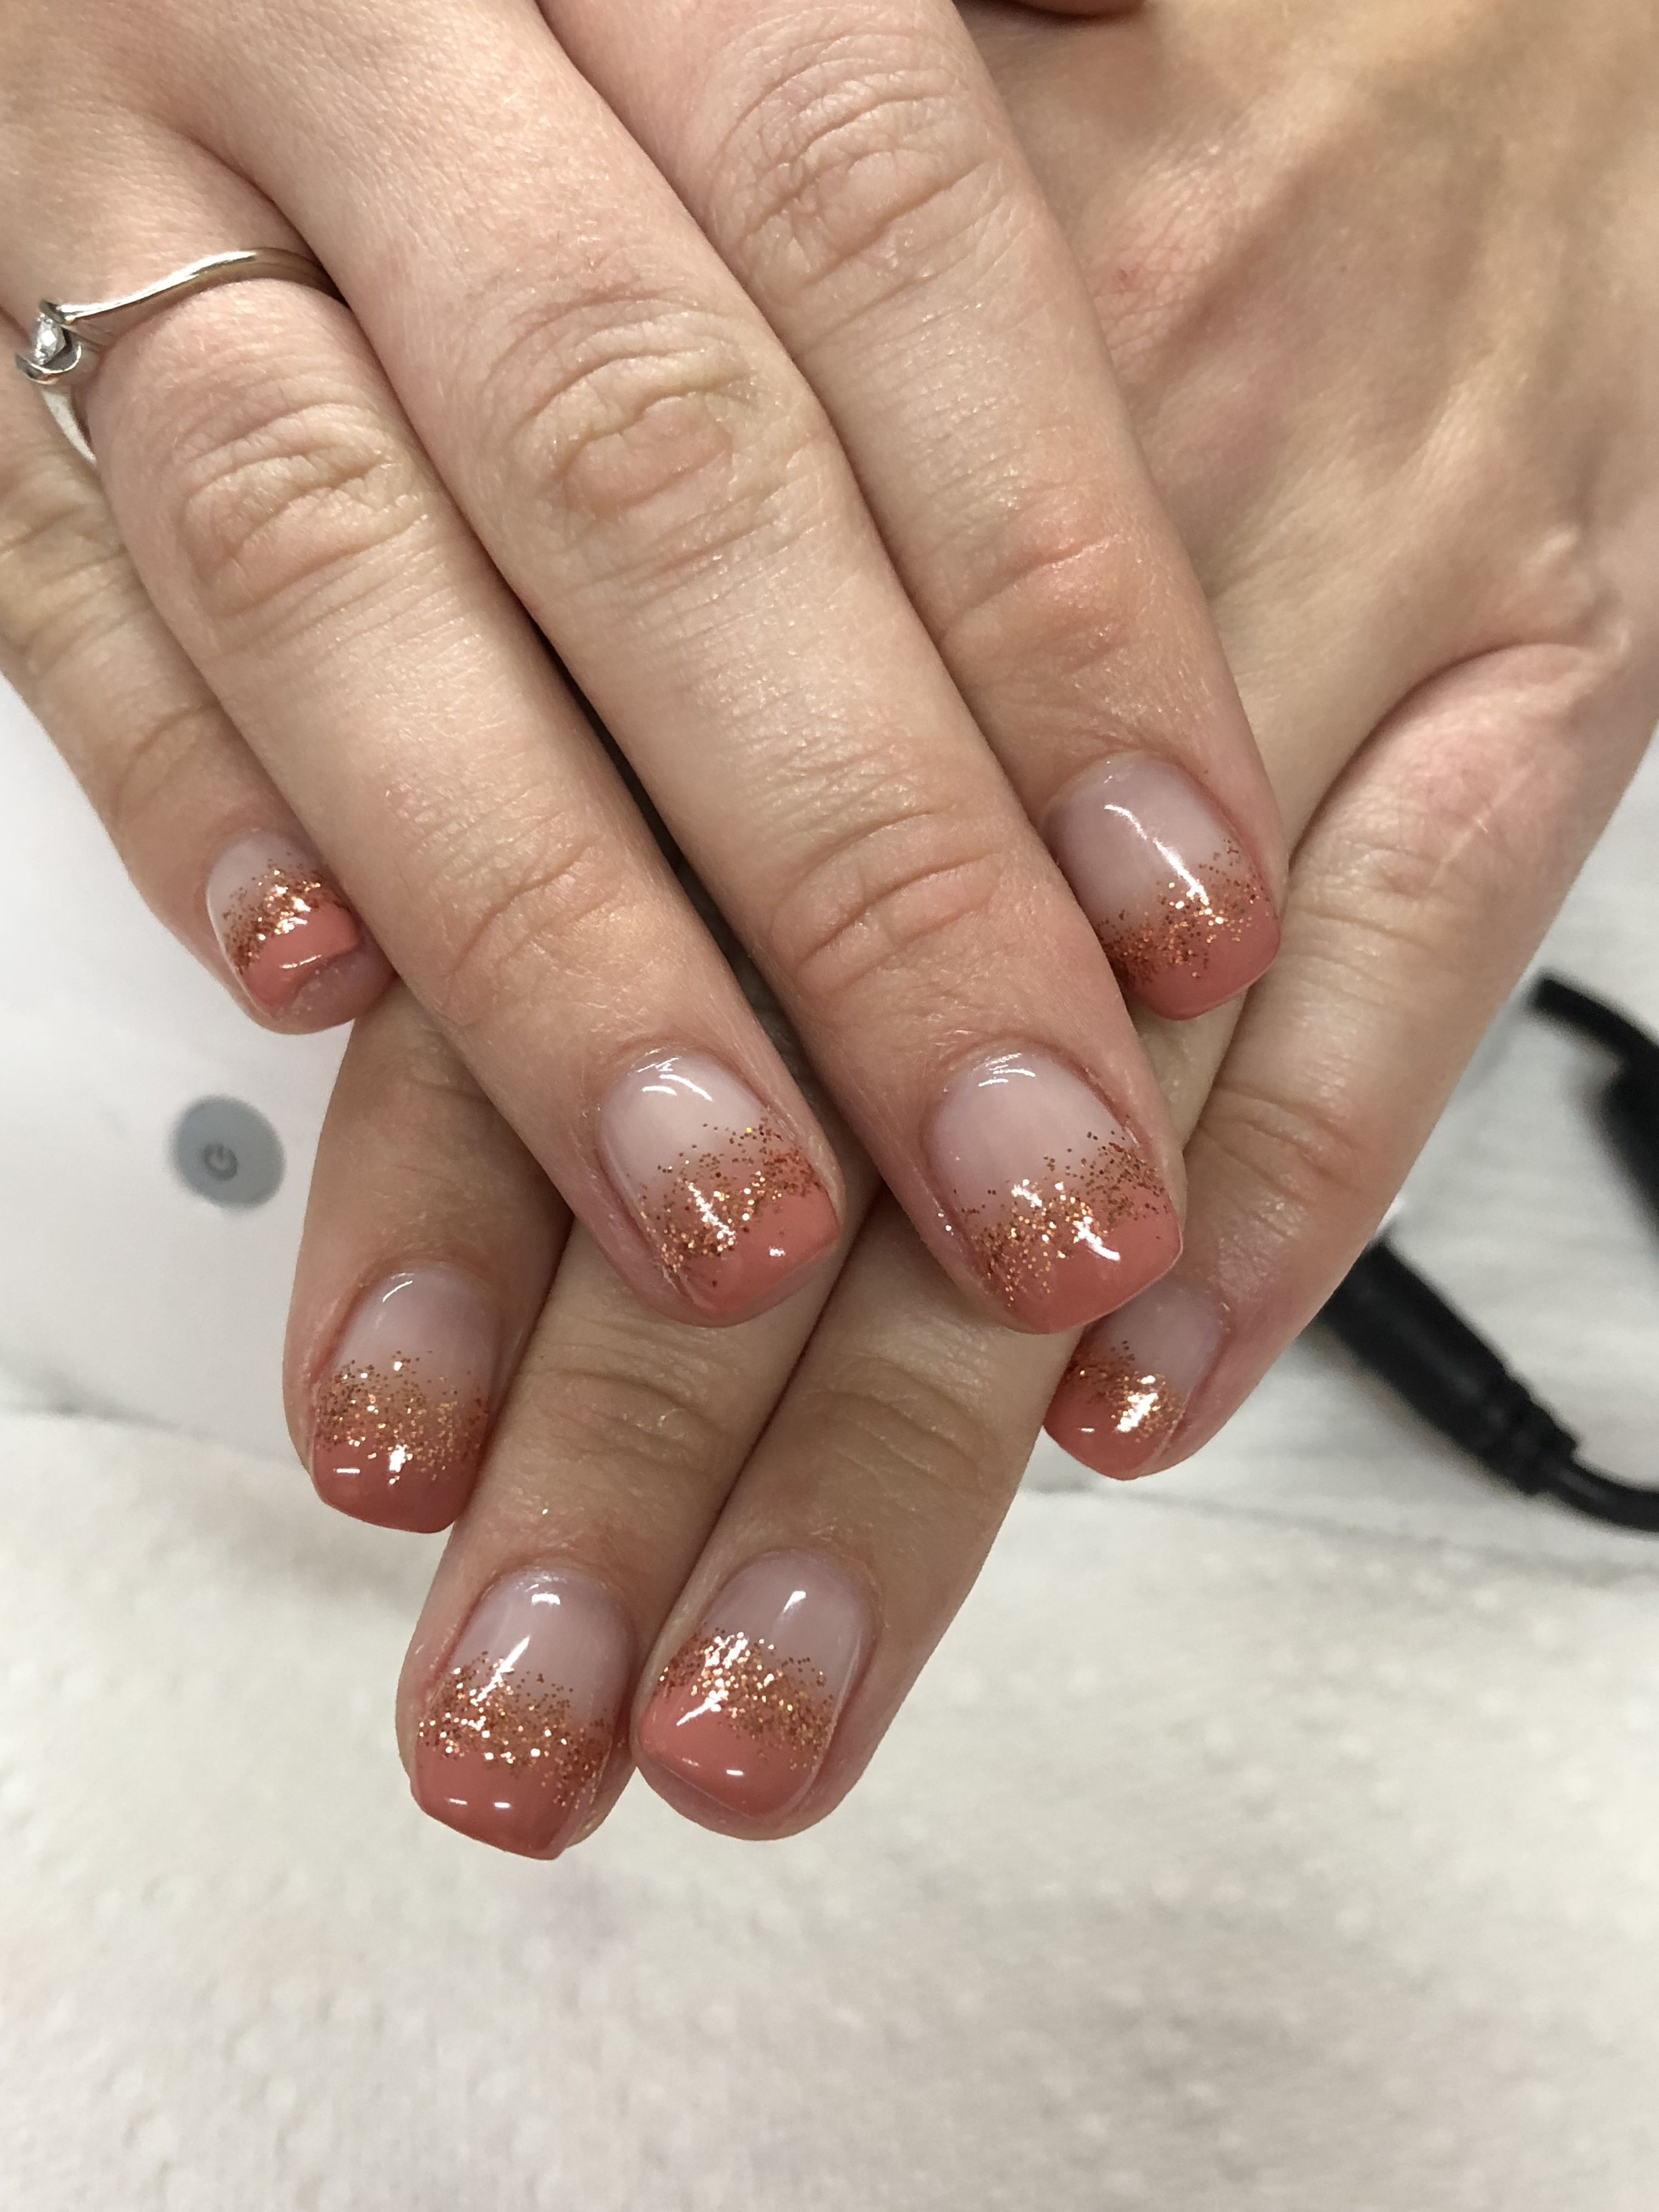 Fall Ombre French Glitter Gel Nails Glitter Gel Nails Nails Gel Nail Designs